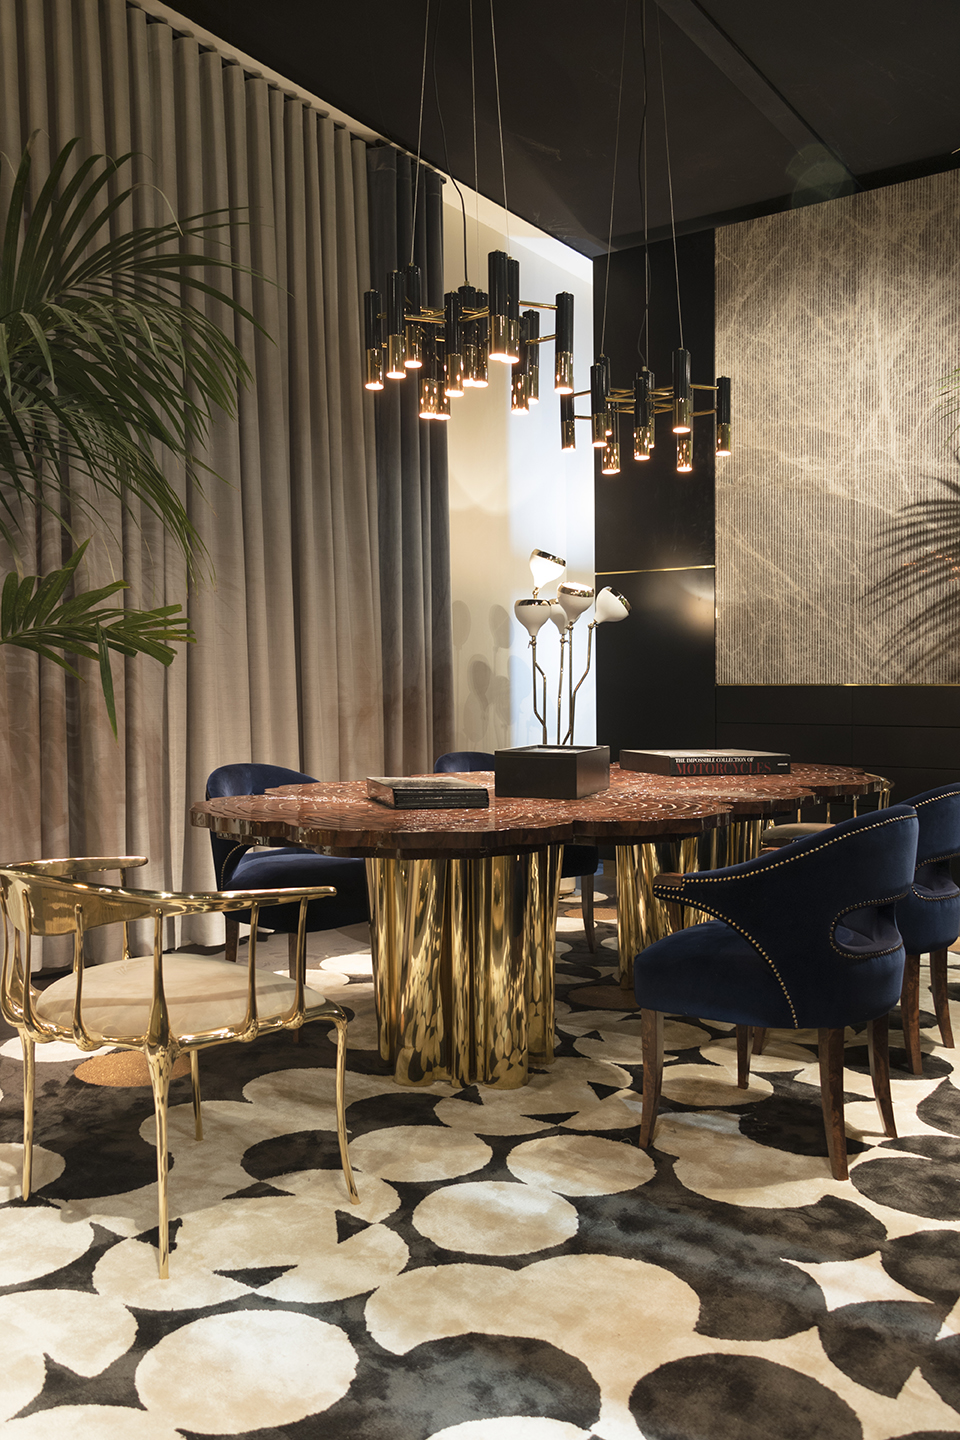 Salone Del Mobile 2019: Amazing Stands To Visit salone del mobile 2019 Salone Del Mobile 2019: Amazing Stands To Visit IMG 9993 1